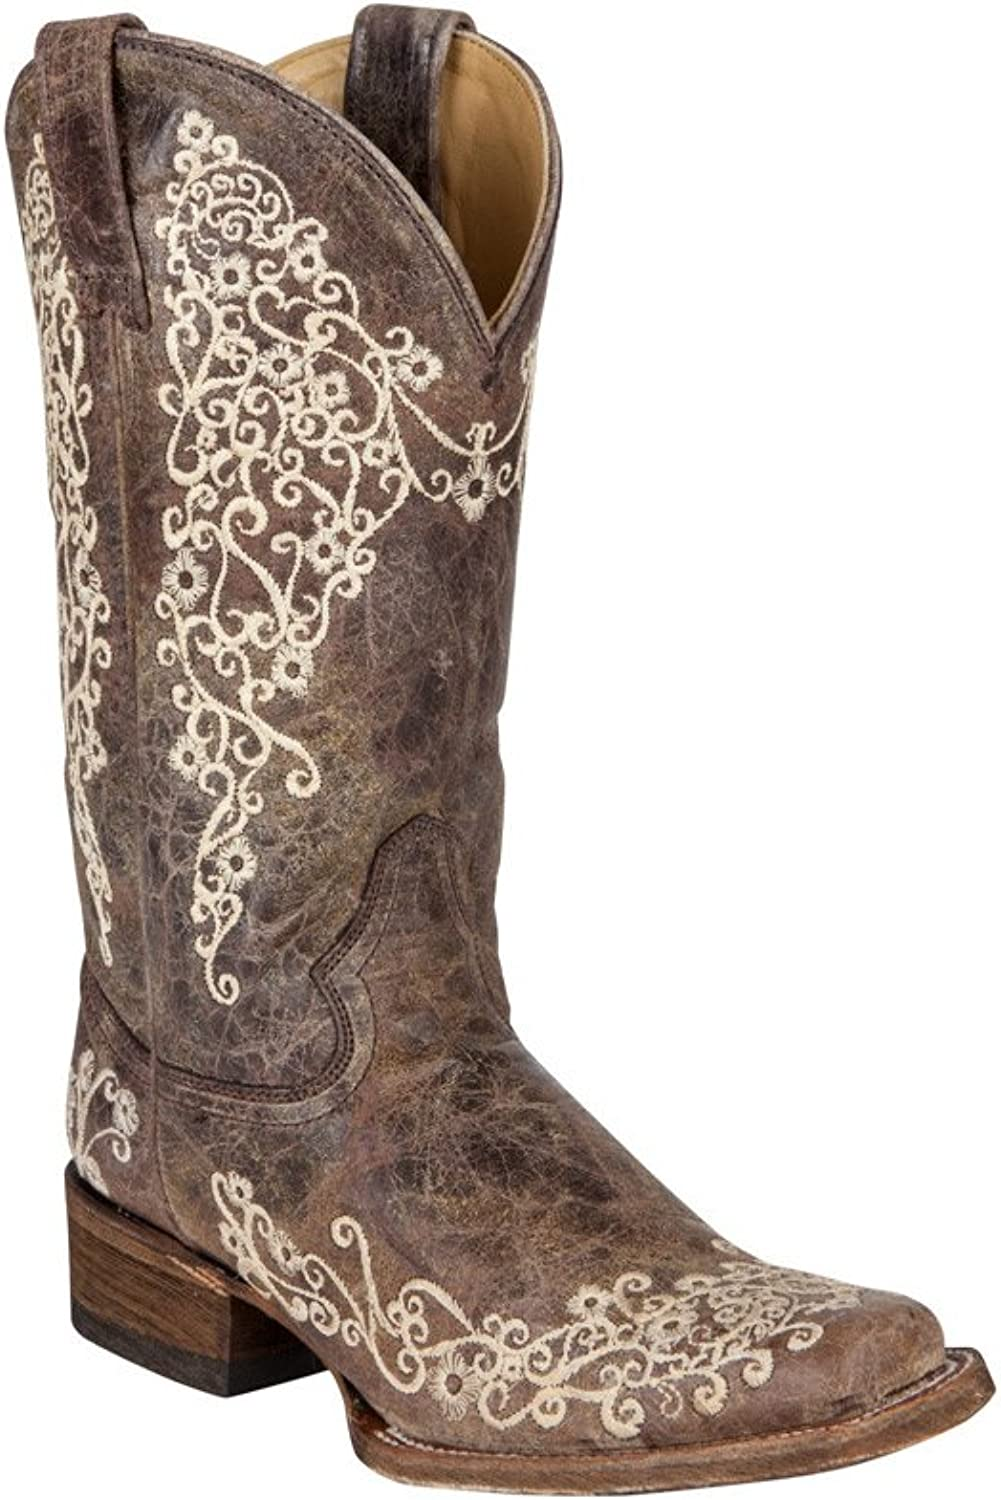 Corral Womens Brown Crater Bone Embroidery Square Toe Western Boot 9 B(M) US Brown